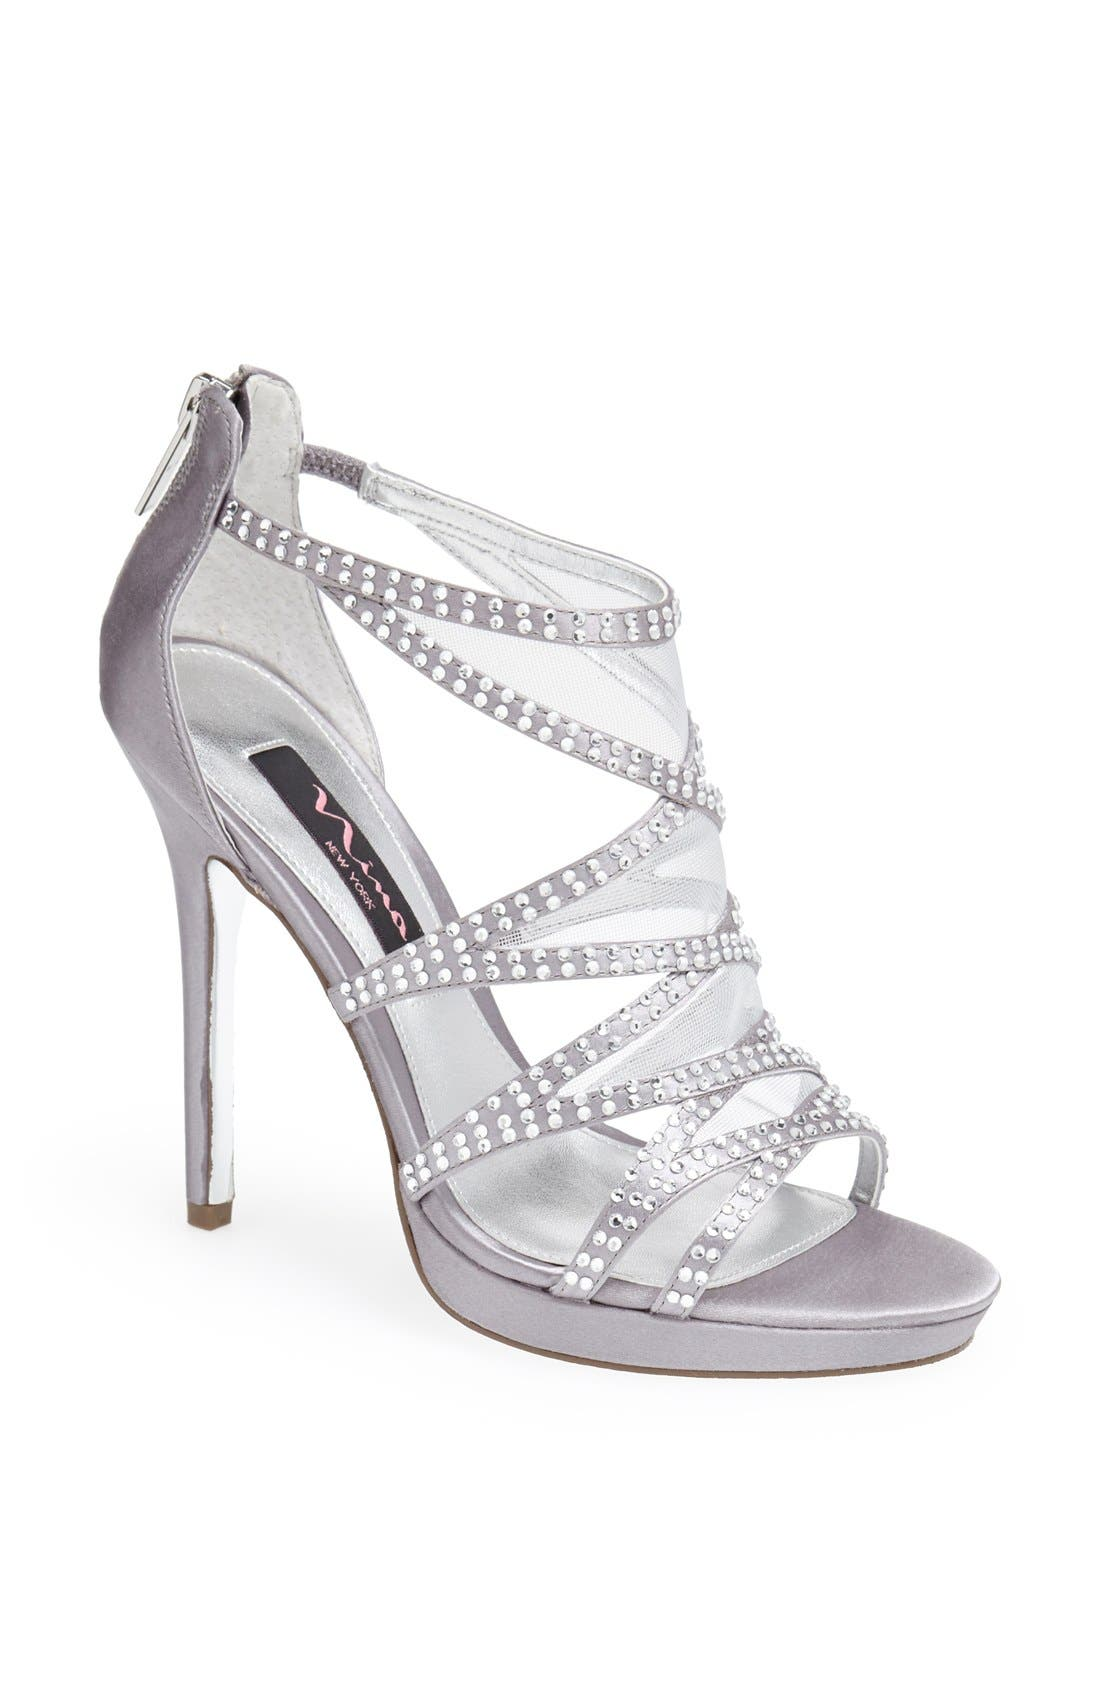 Alternate Image 1 Selected - Nina 'Belinda' Cage Sandal